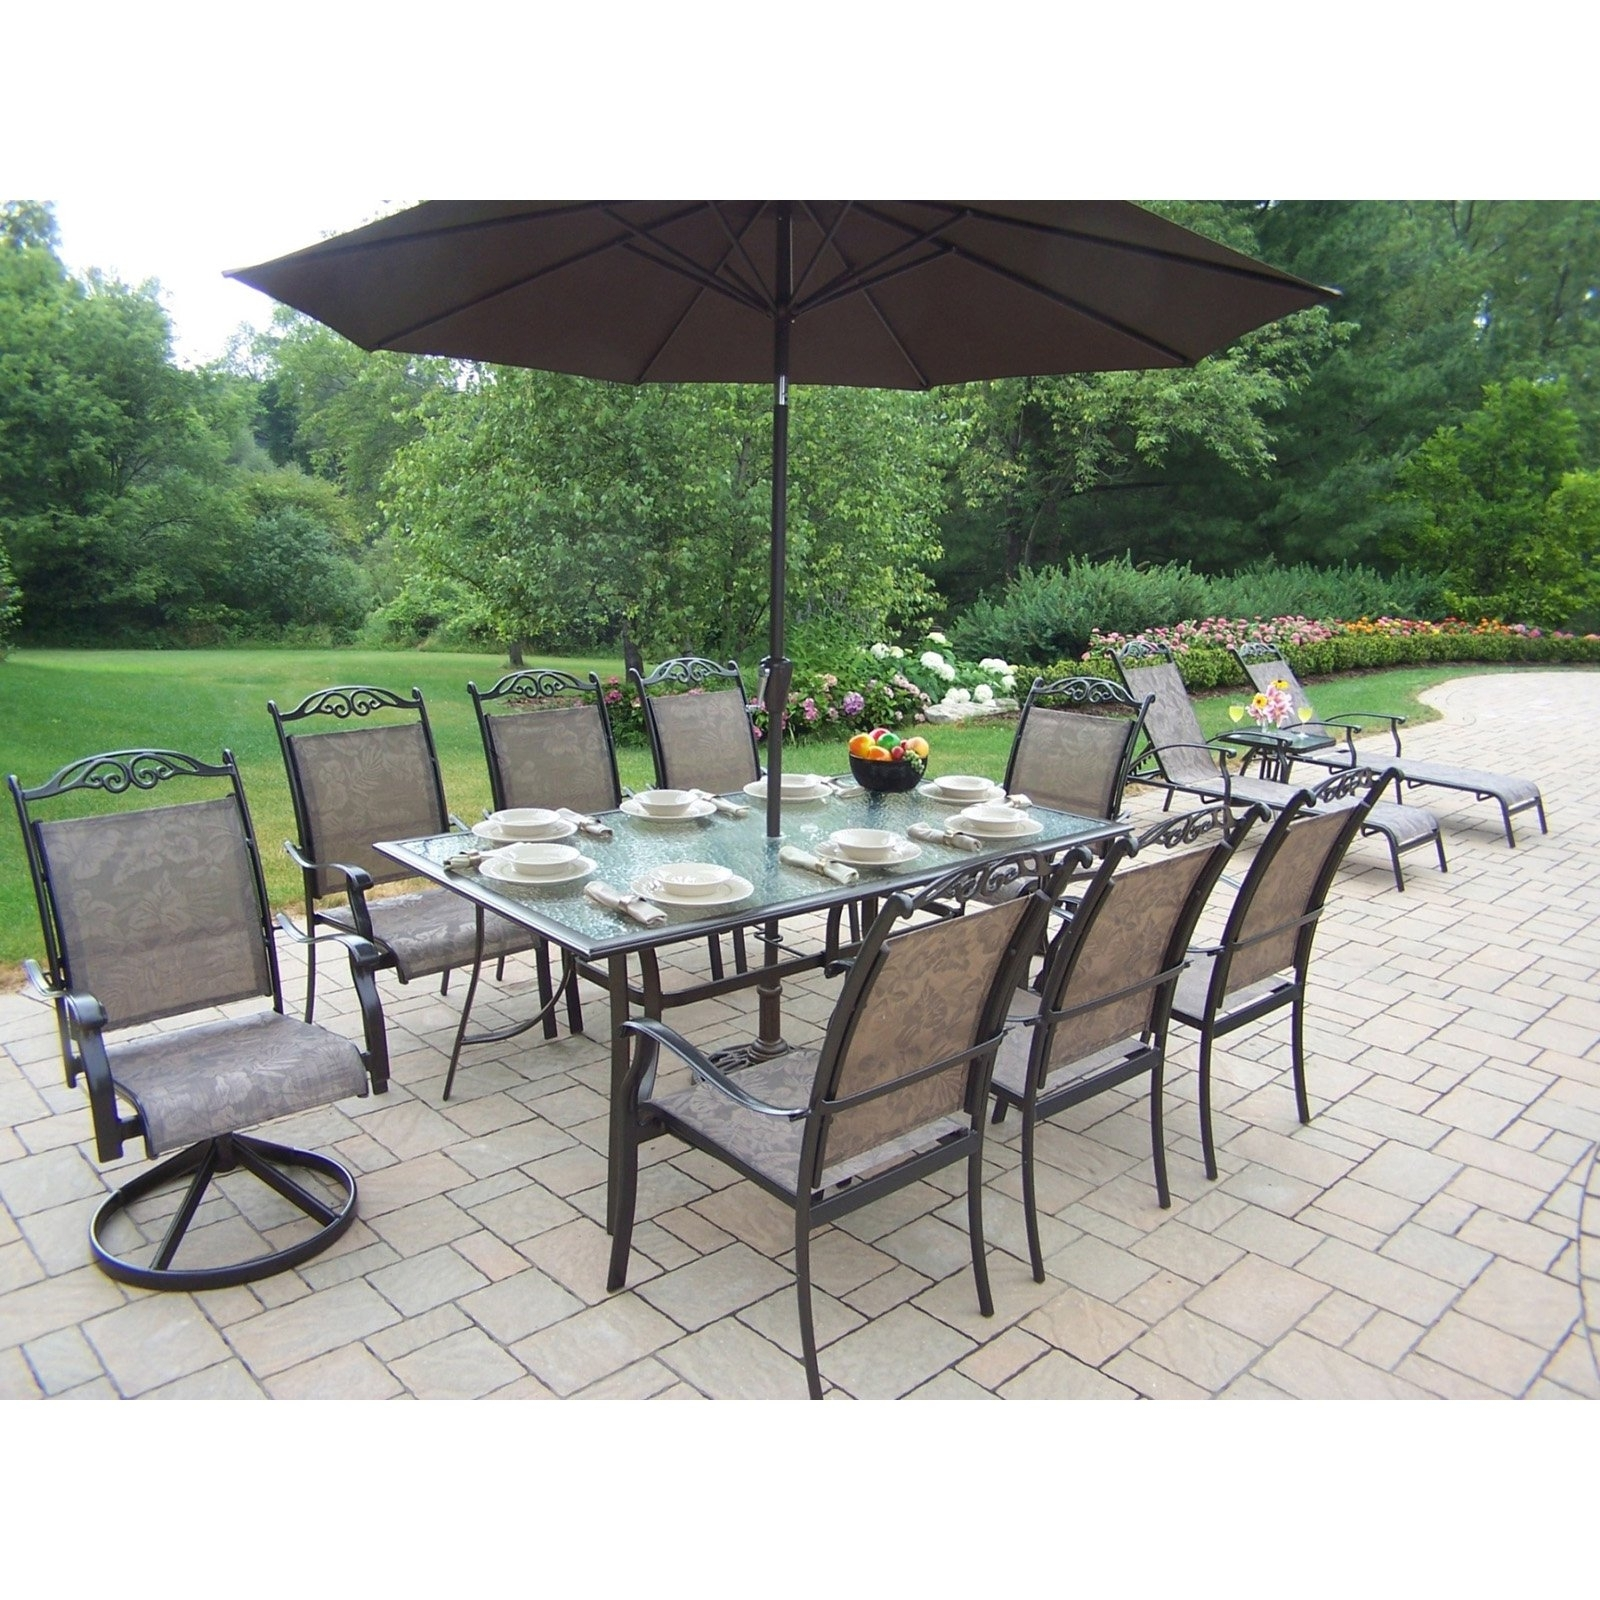 Preferred Patio Dining Umbrellas Within Patio Furniture Walmart Patio Furniture Sets Patio Dining Luxury (View 14 of 20)